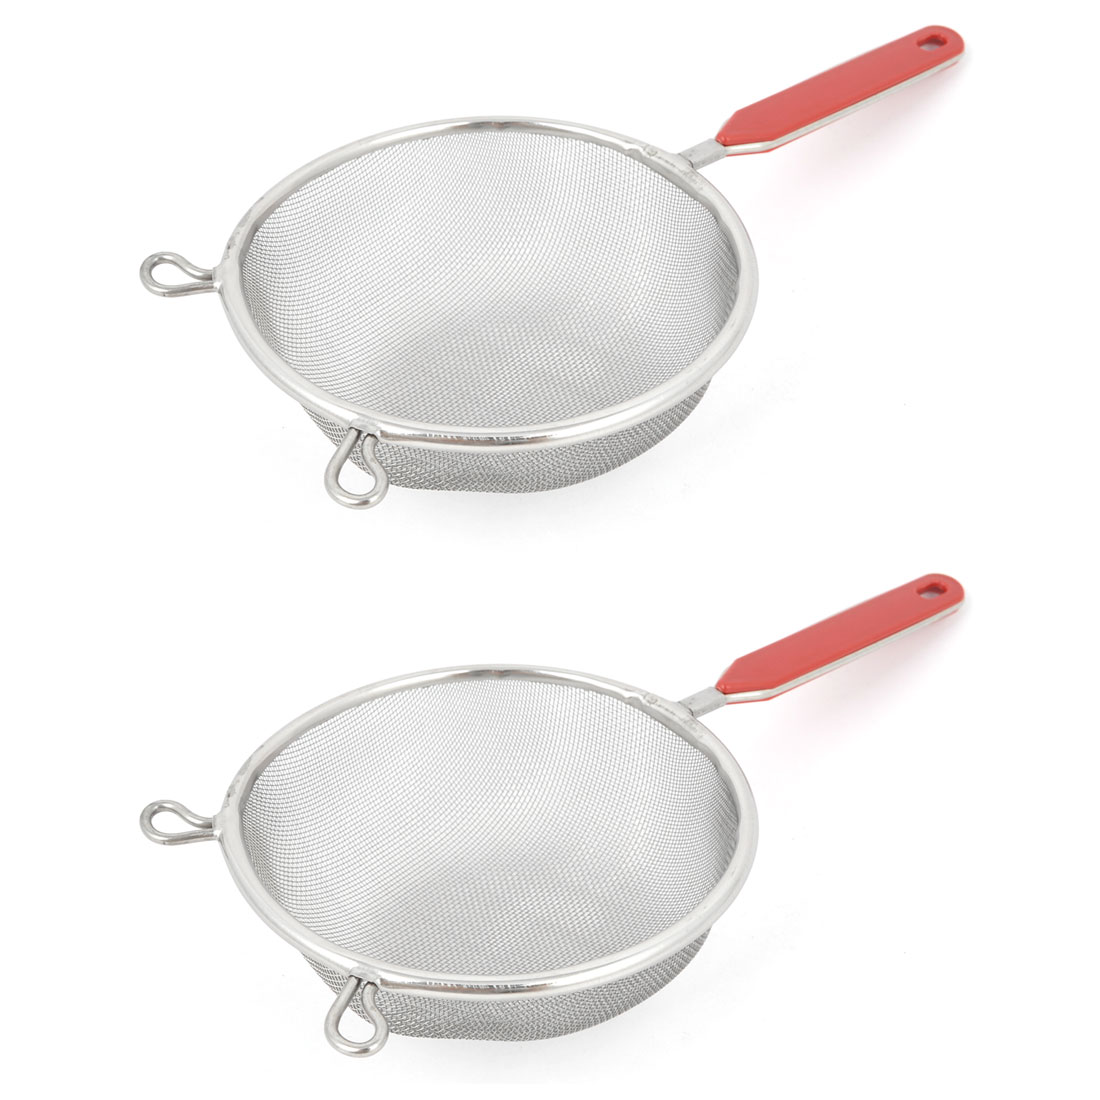 "2pcs Household Plastic 3.9"" Long Handle Stainless Steel Wire Screen Mesh Ladle"